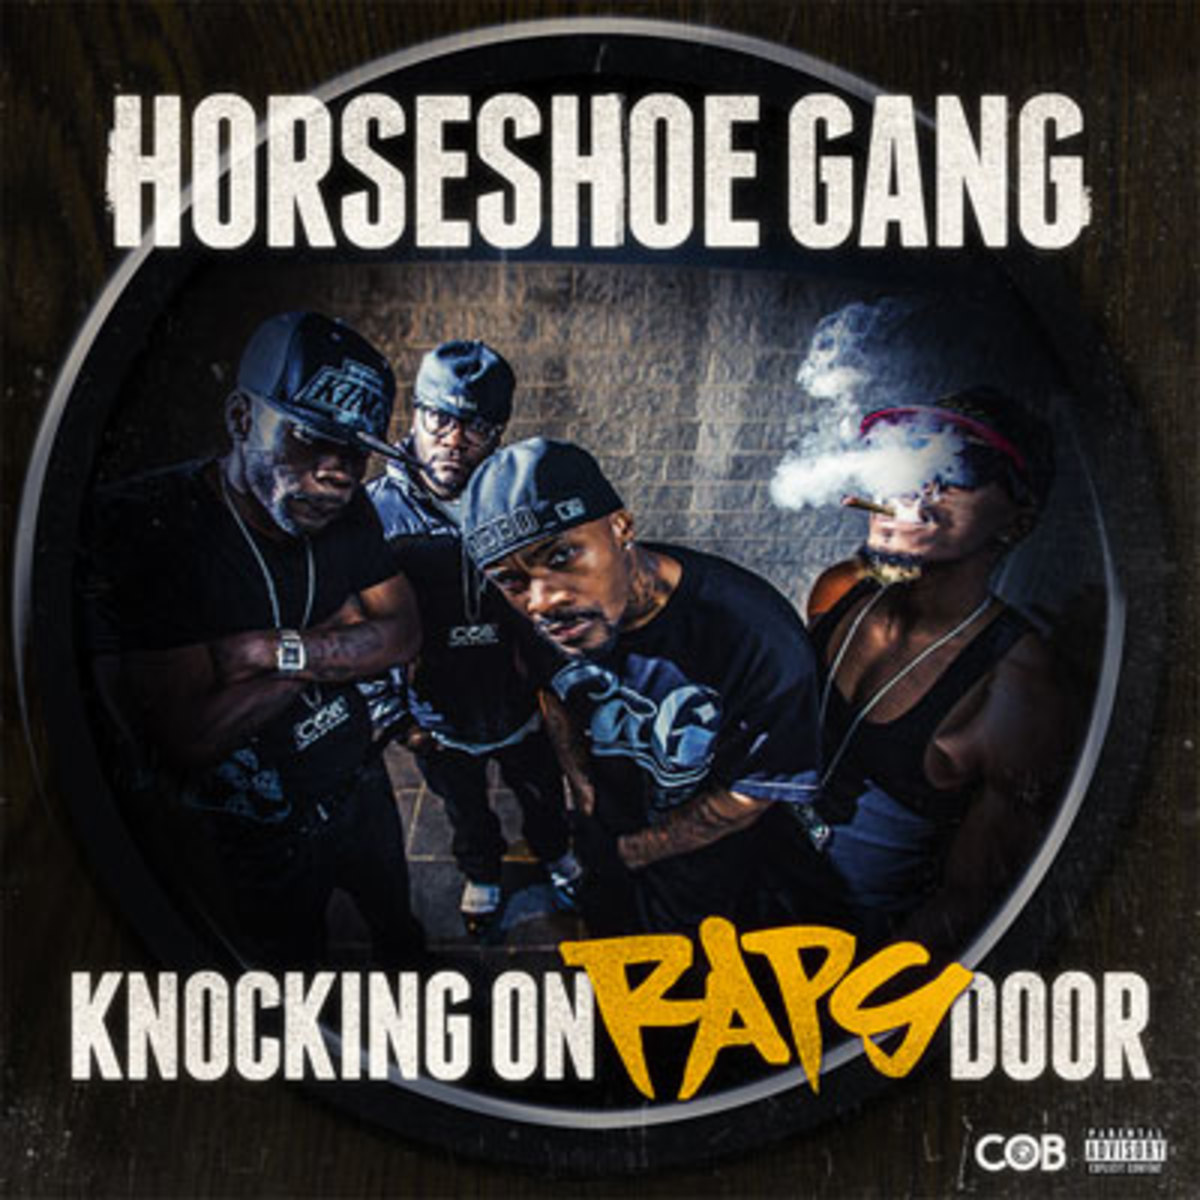 horseshoe-gang-knocking-on-raps-door.jpg